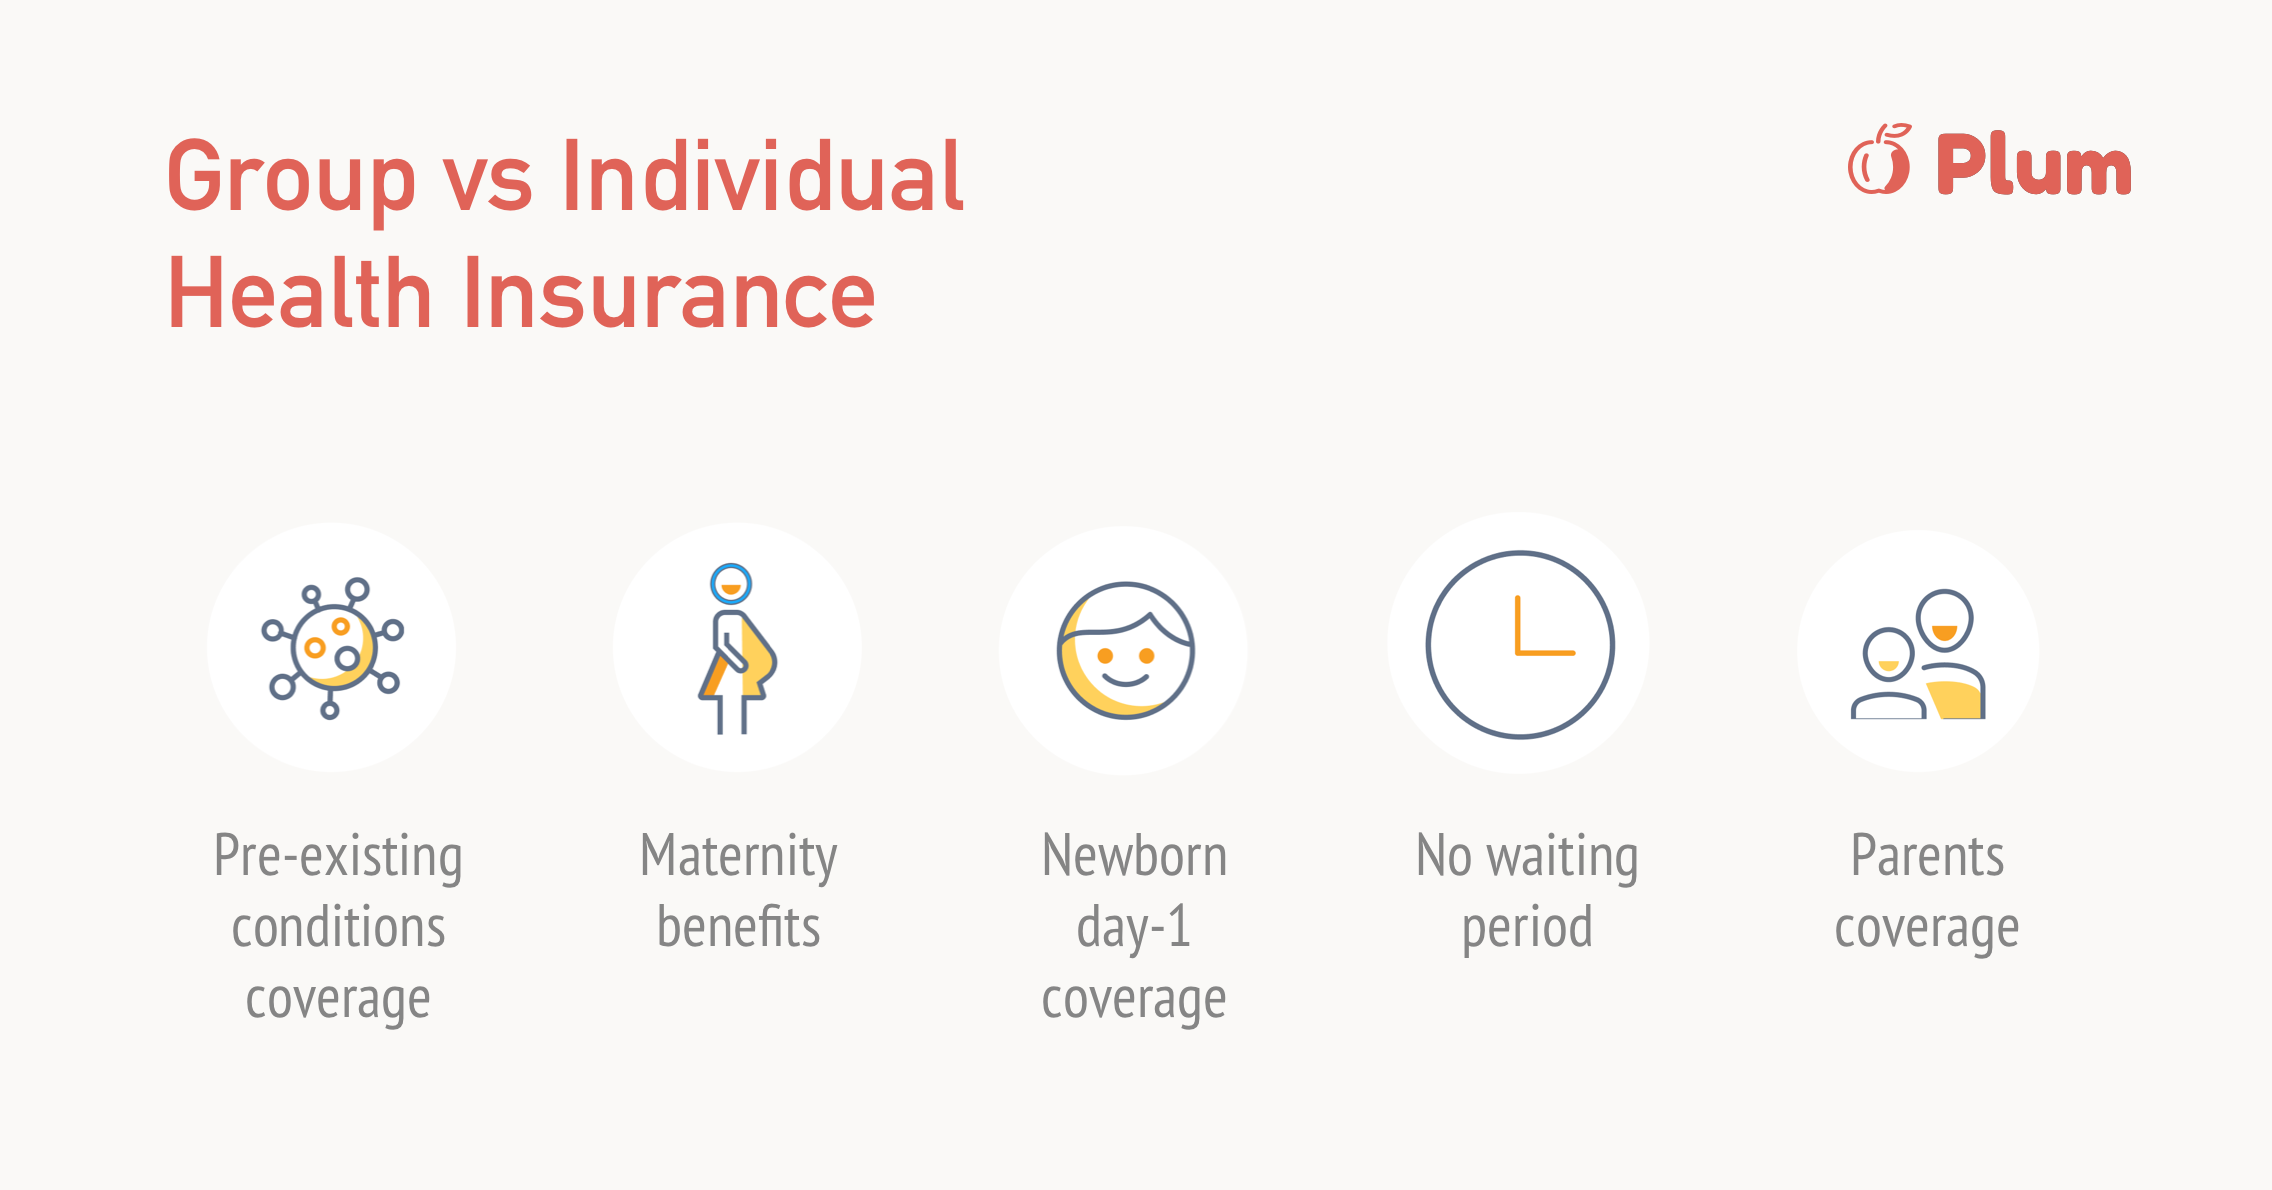 Group Health insurance better than individual insurance